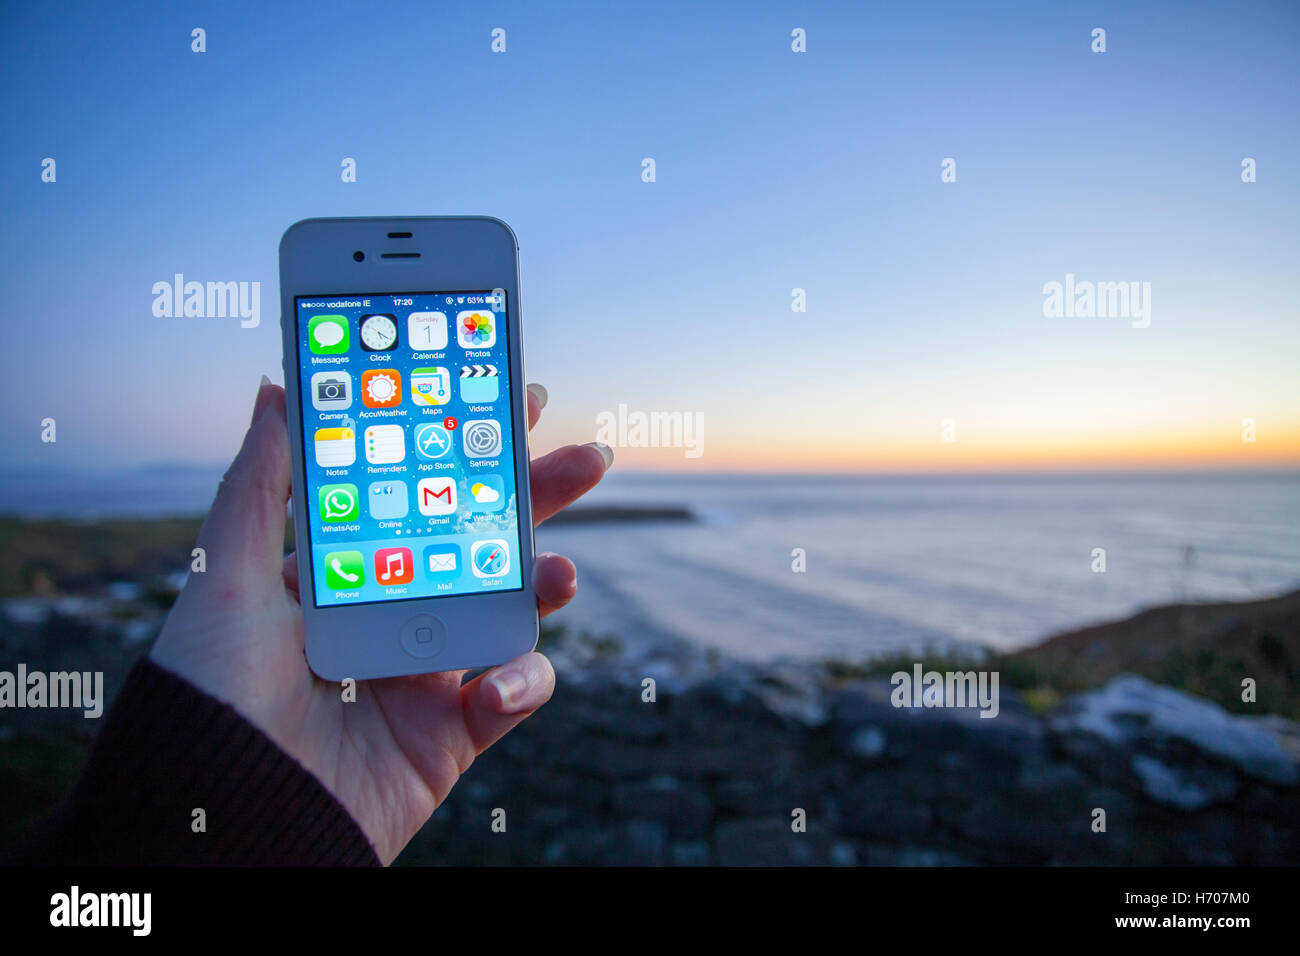 Hands using a smart phone to take a photograph of a landscape at twilight - Stock Image